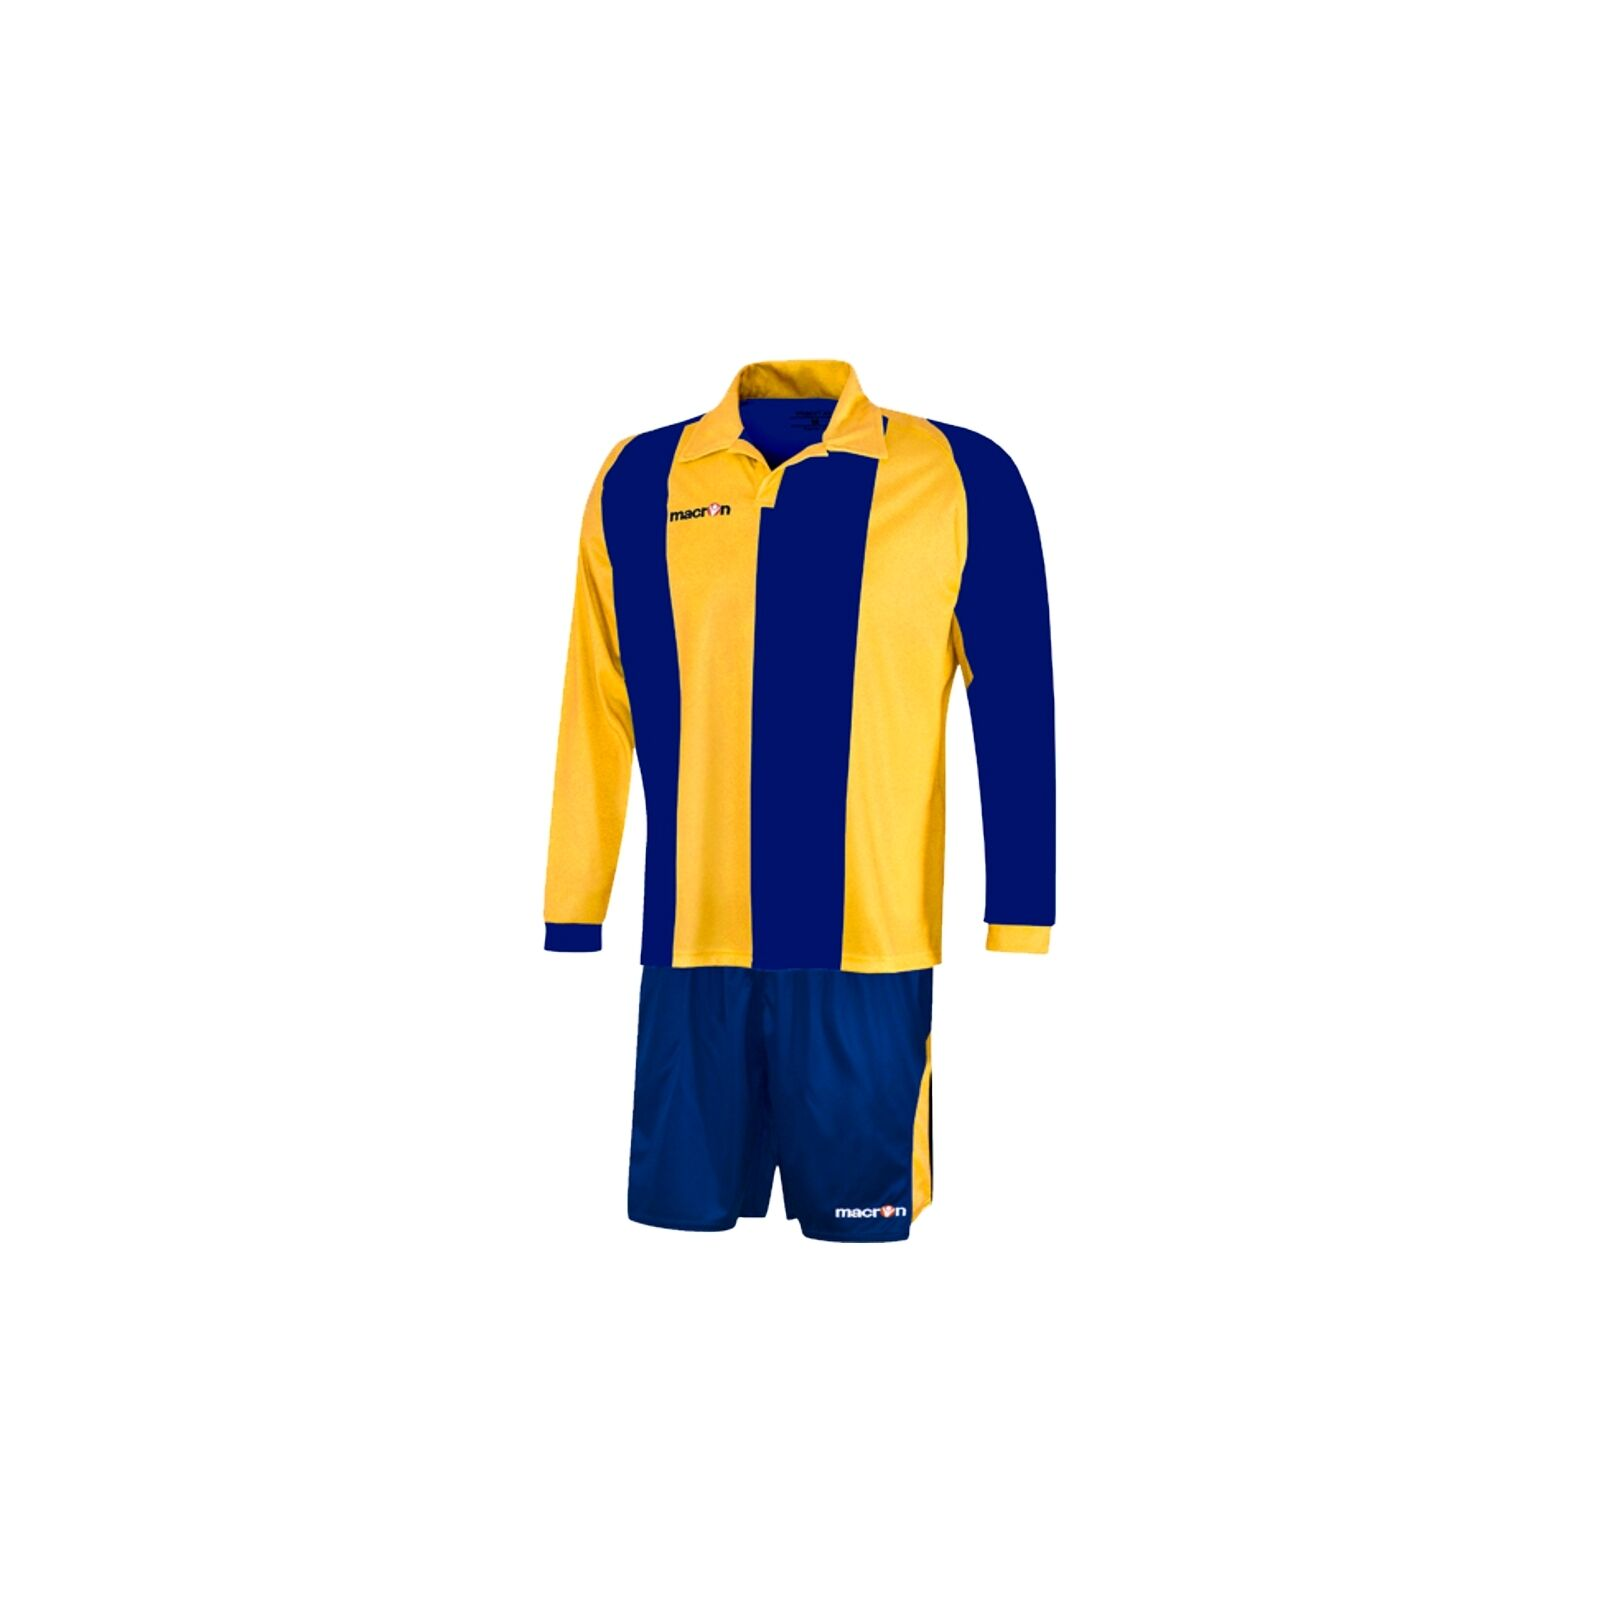 MACRON IVELAND FOOTBALL KIT - LONG SLEEVE - blueE YELLOW - XL